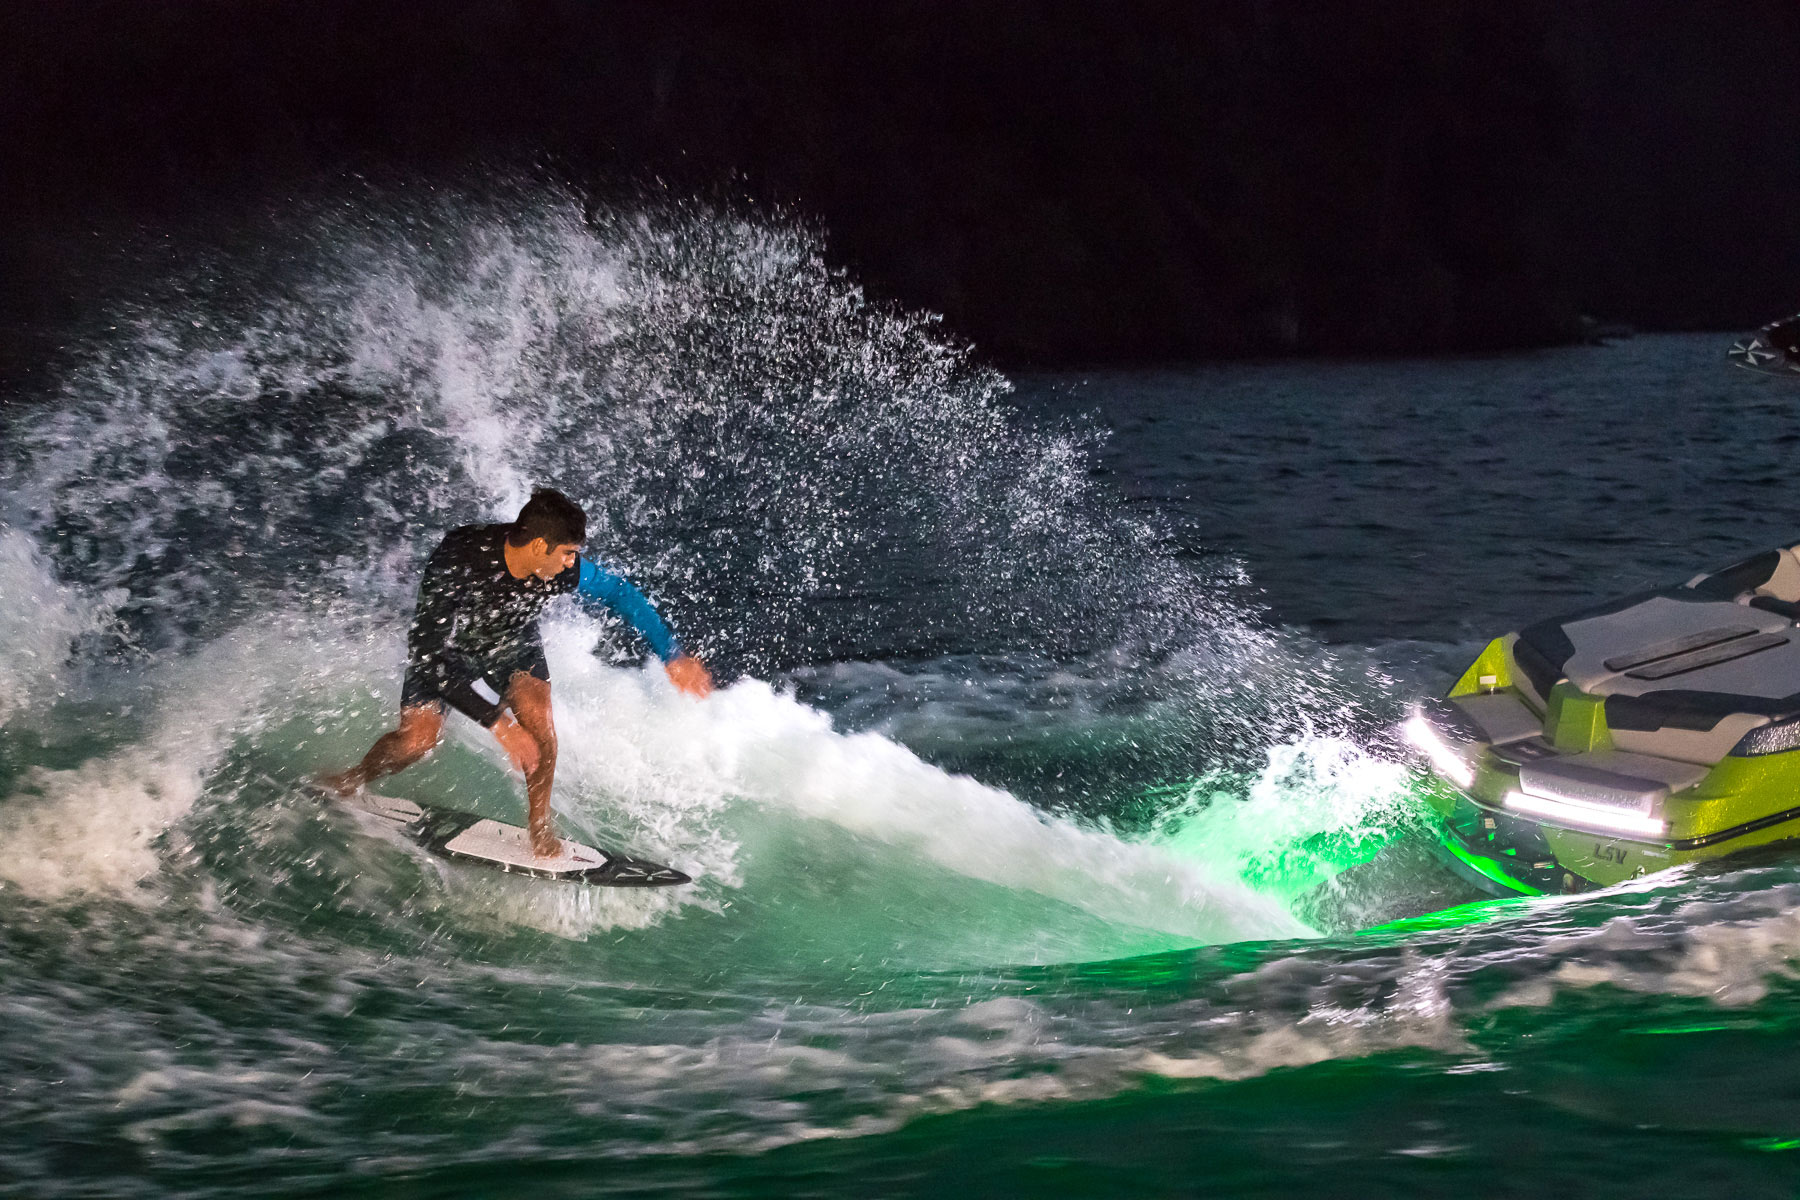 Wake surfer at night with underwater LED lights